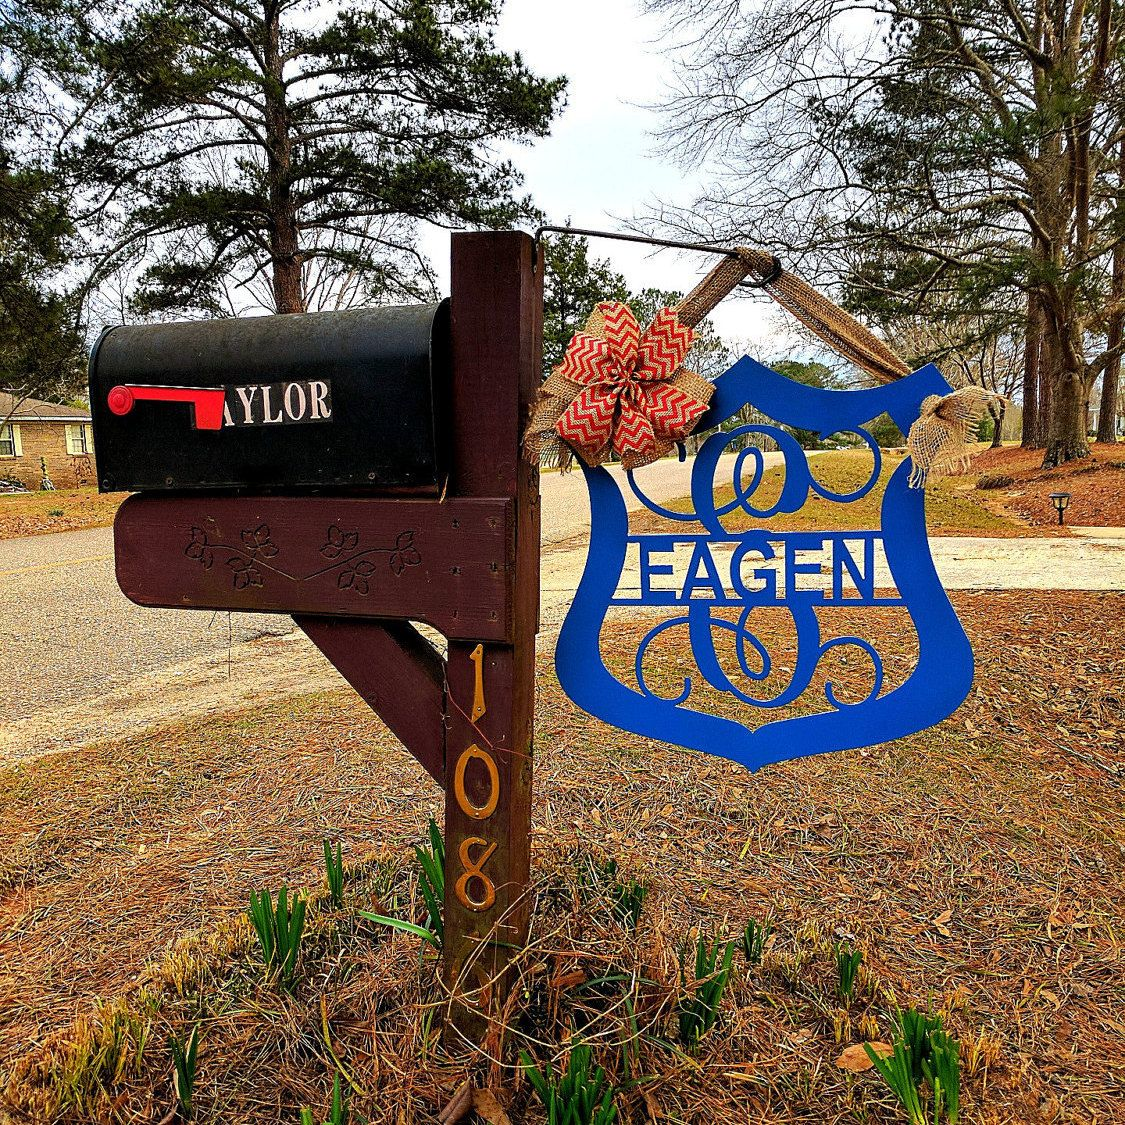 Law enforcement police gifts mailbox decor yard sign